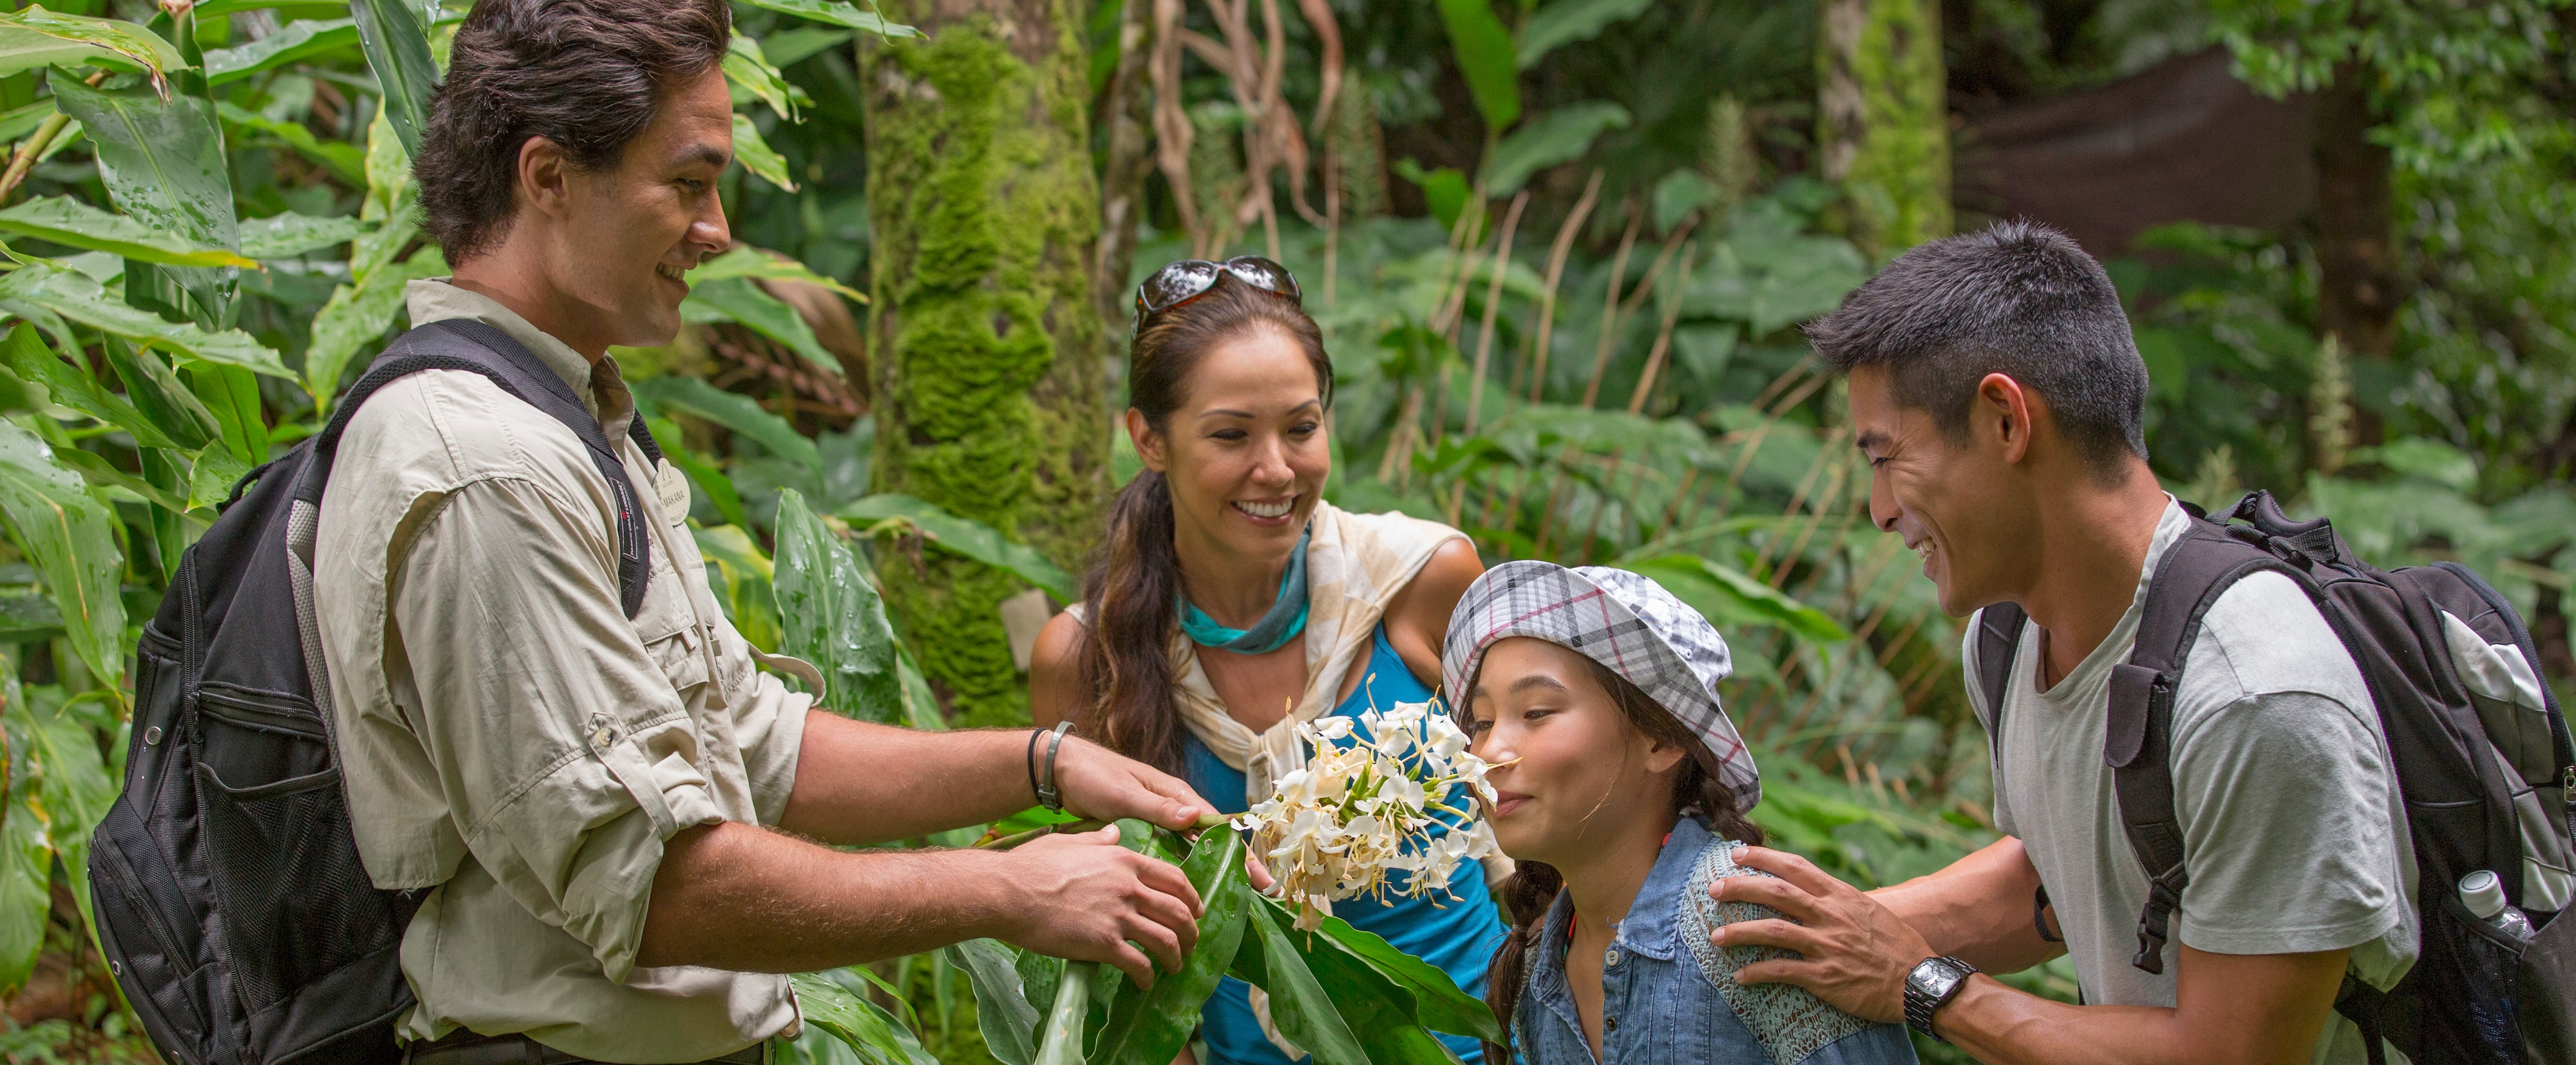 A family learns about flowers on an Oʻahu nature hike